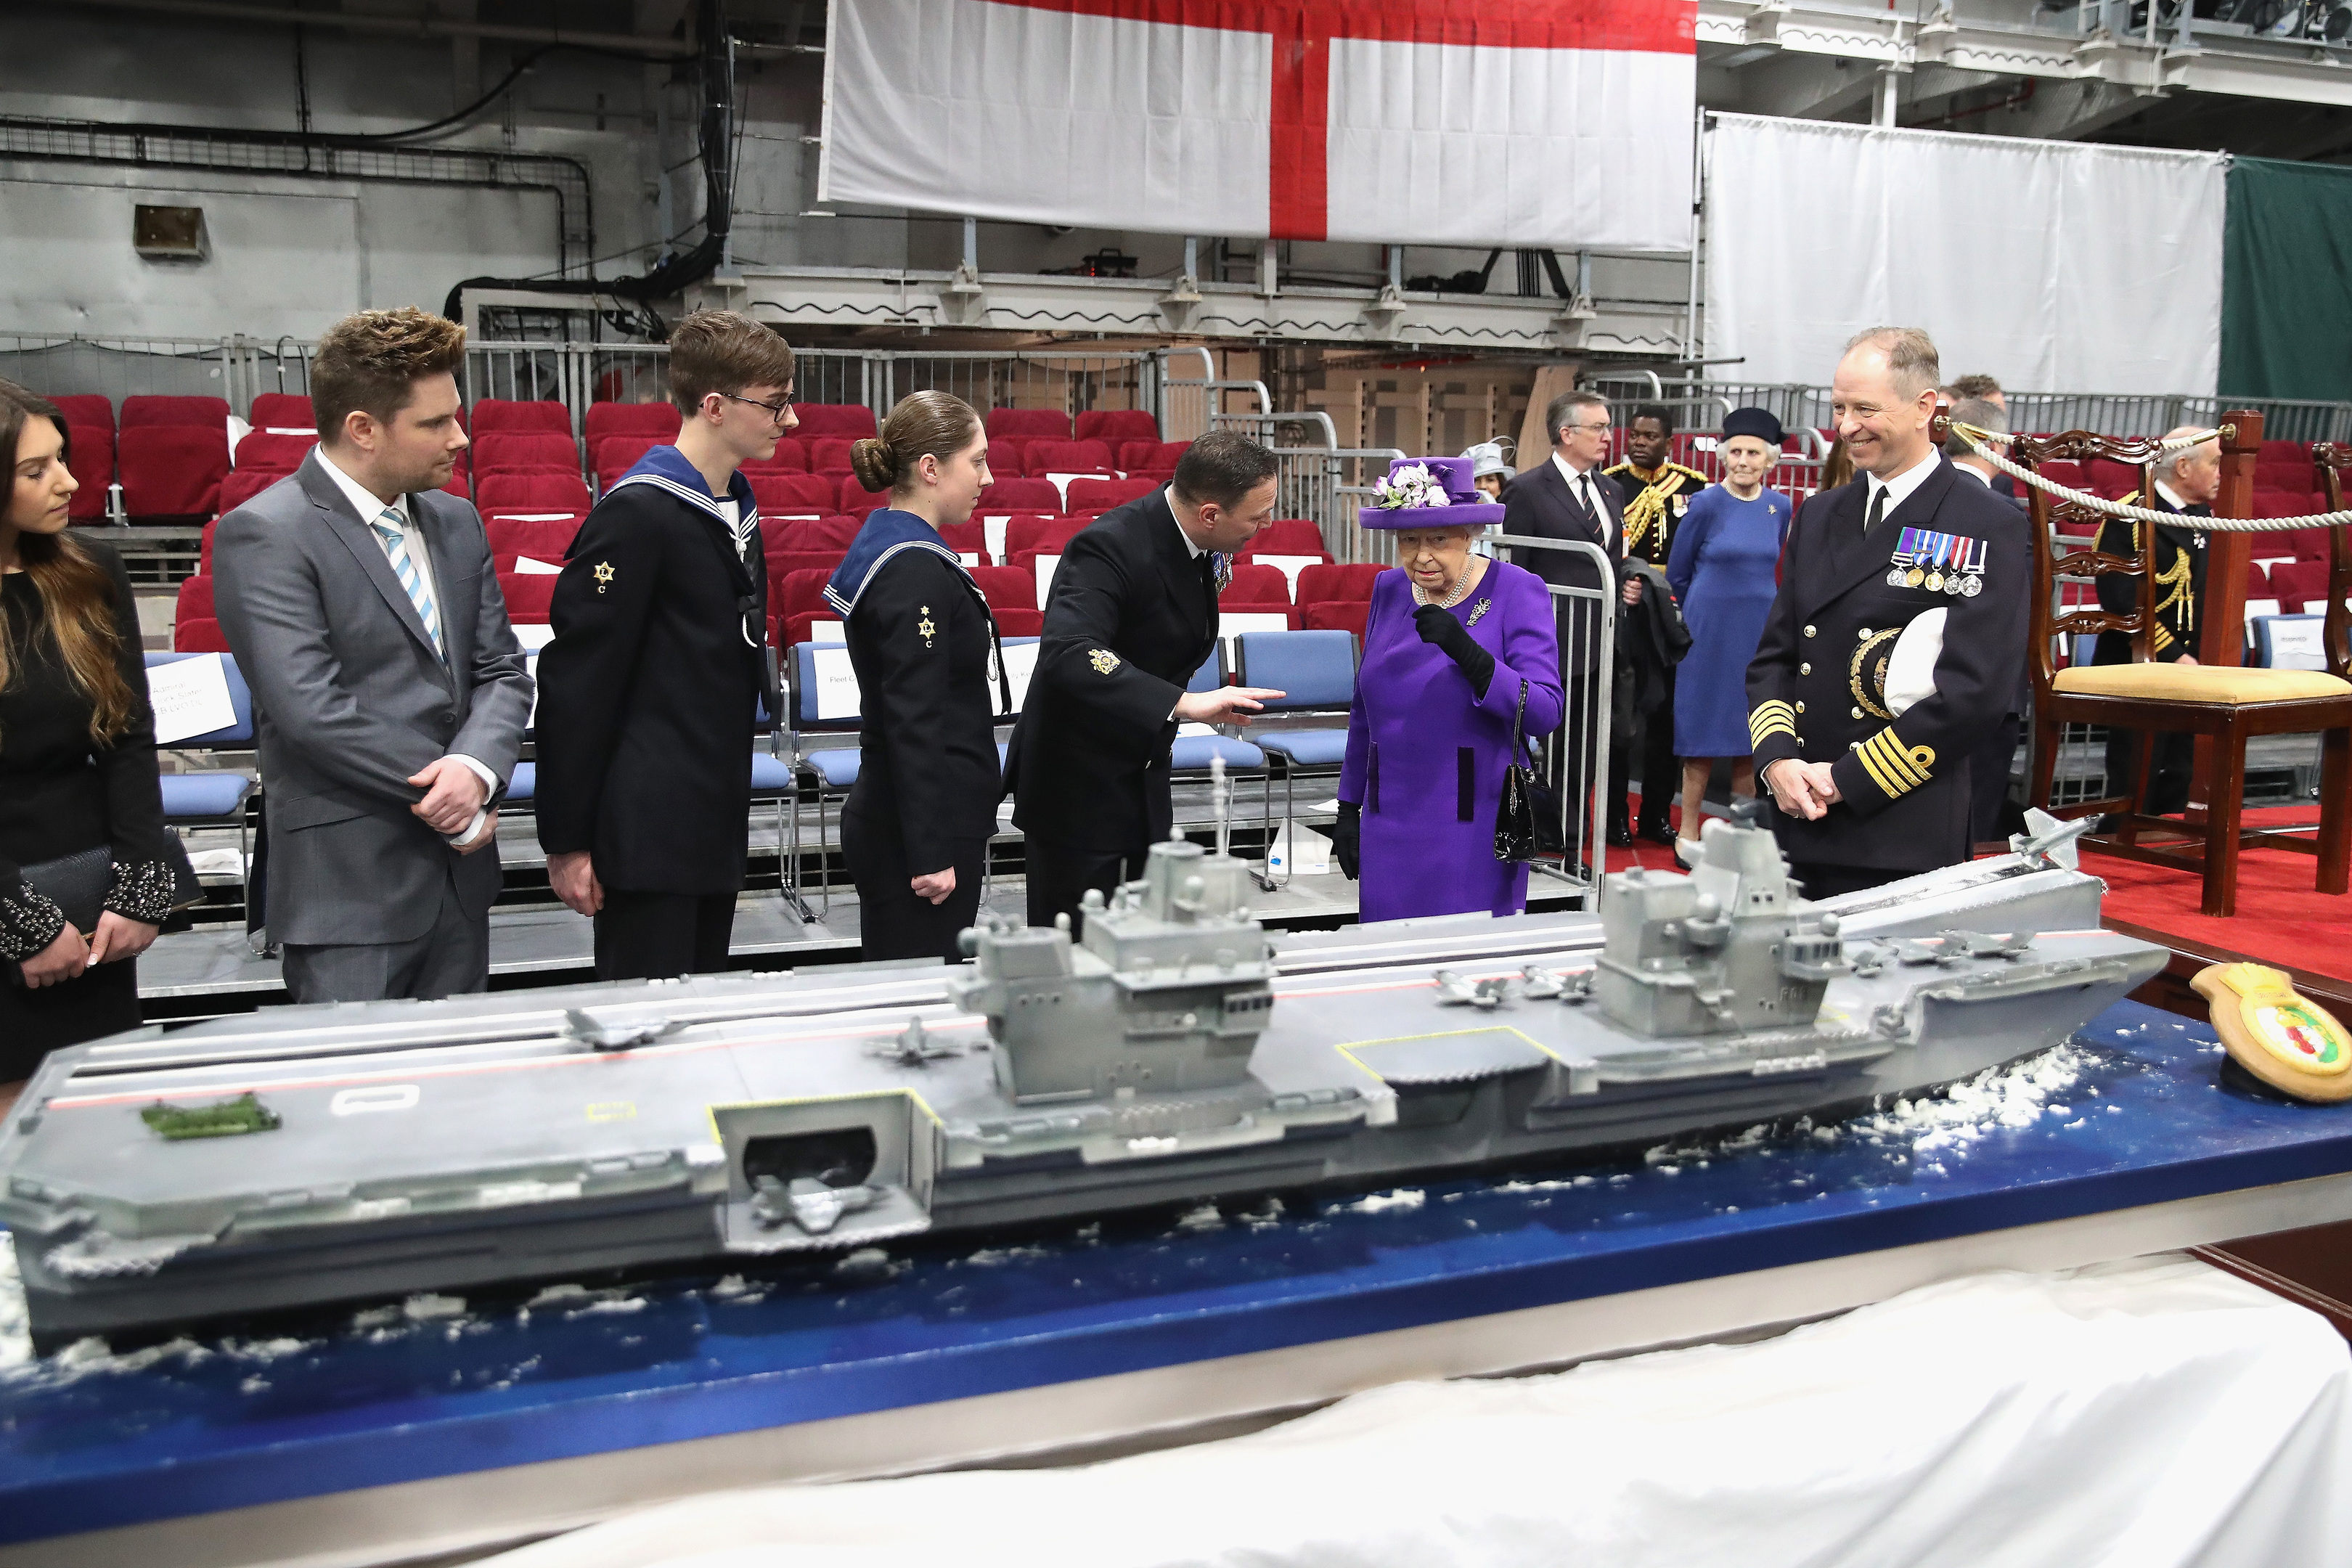 Queen Elizabeth II  looks at a cake made by David Duncan during the Commissioning Ceremony of HMS Queen Elizabeth at HM Naval Base